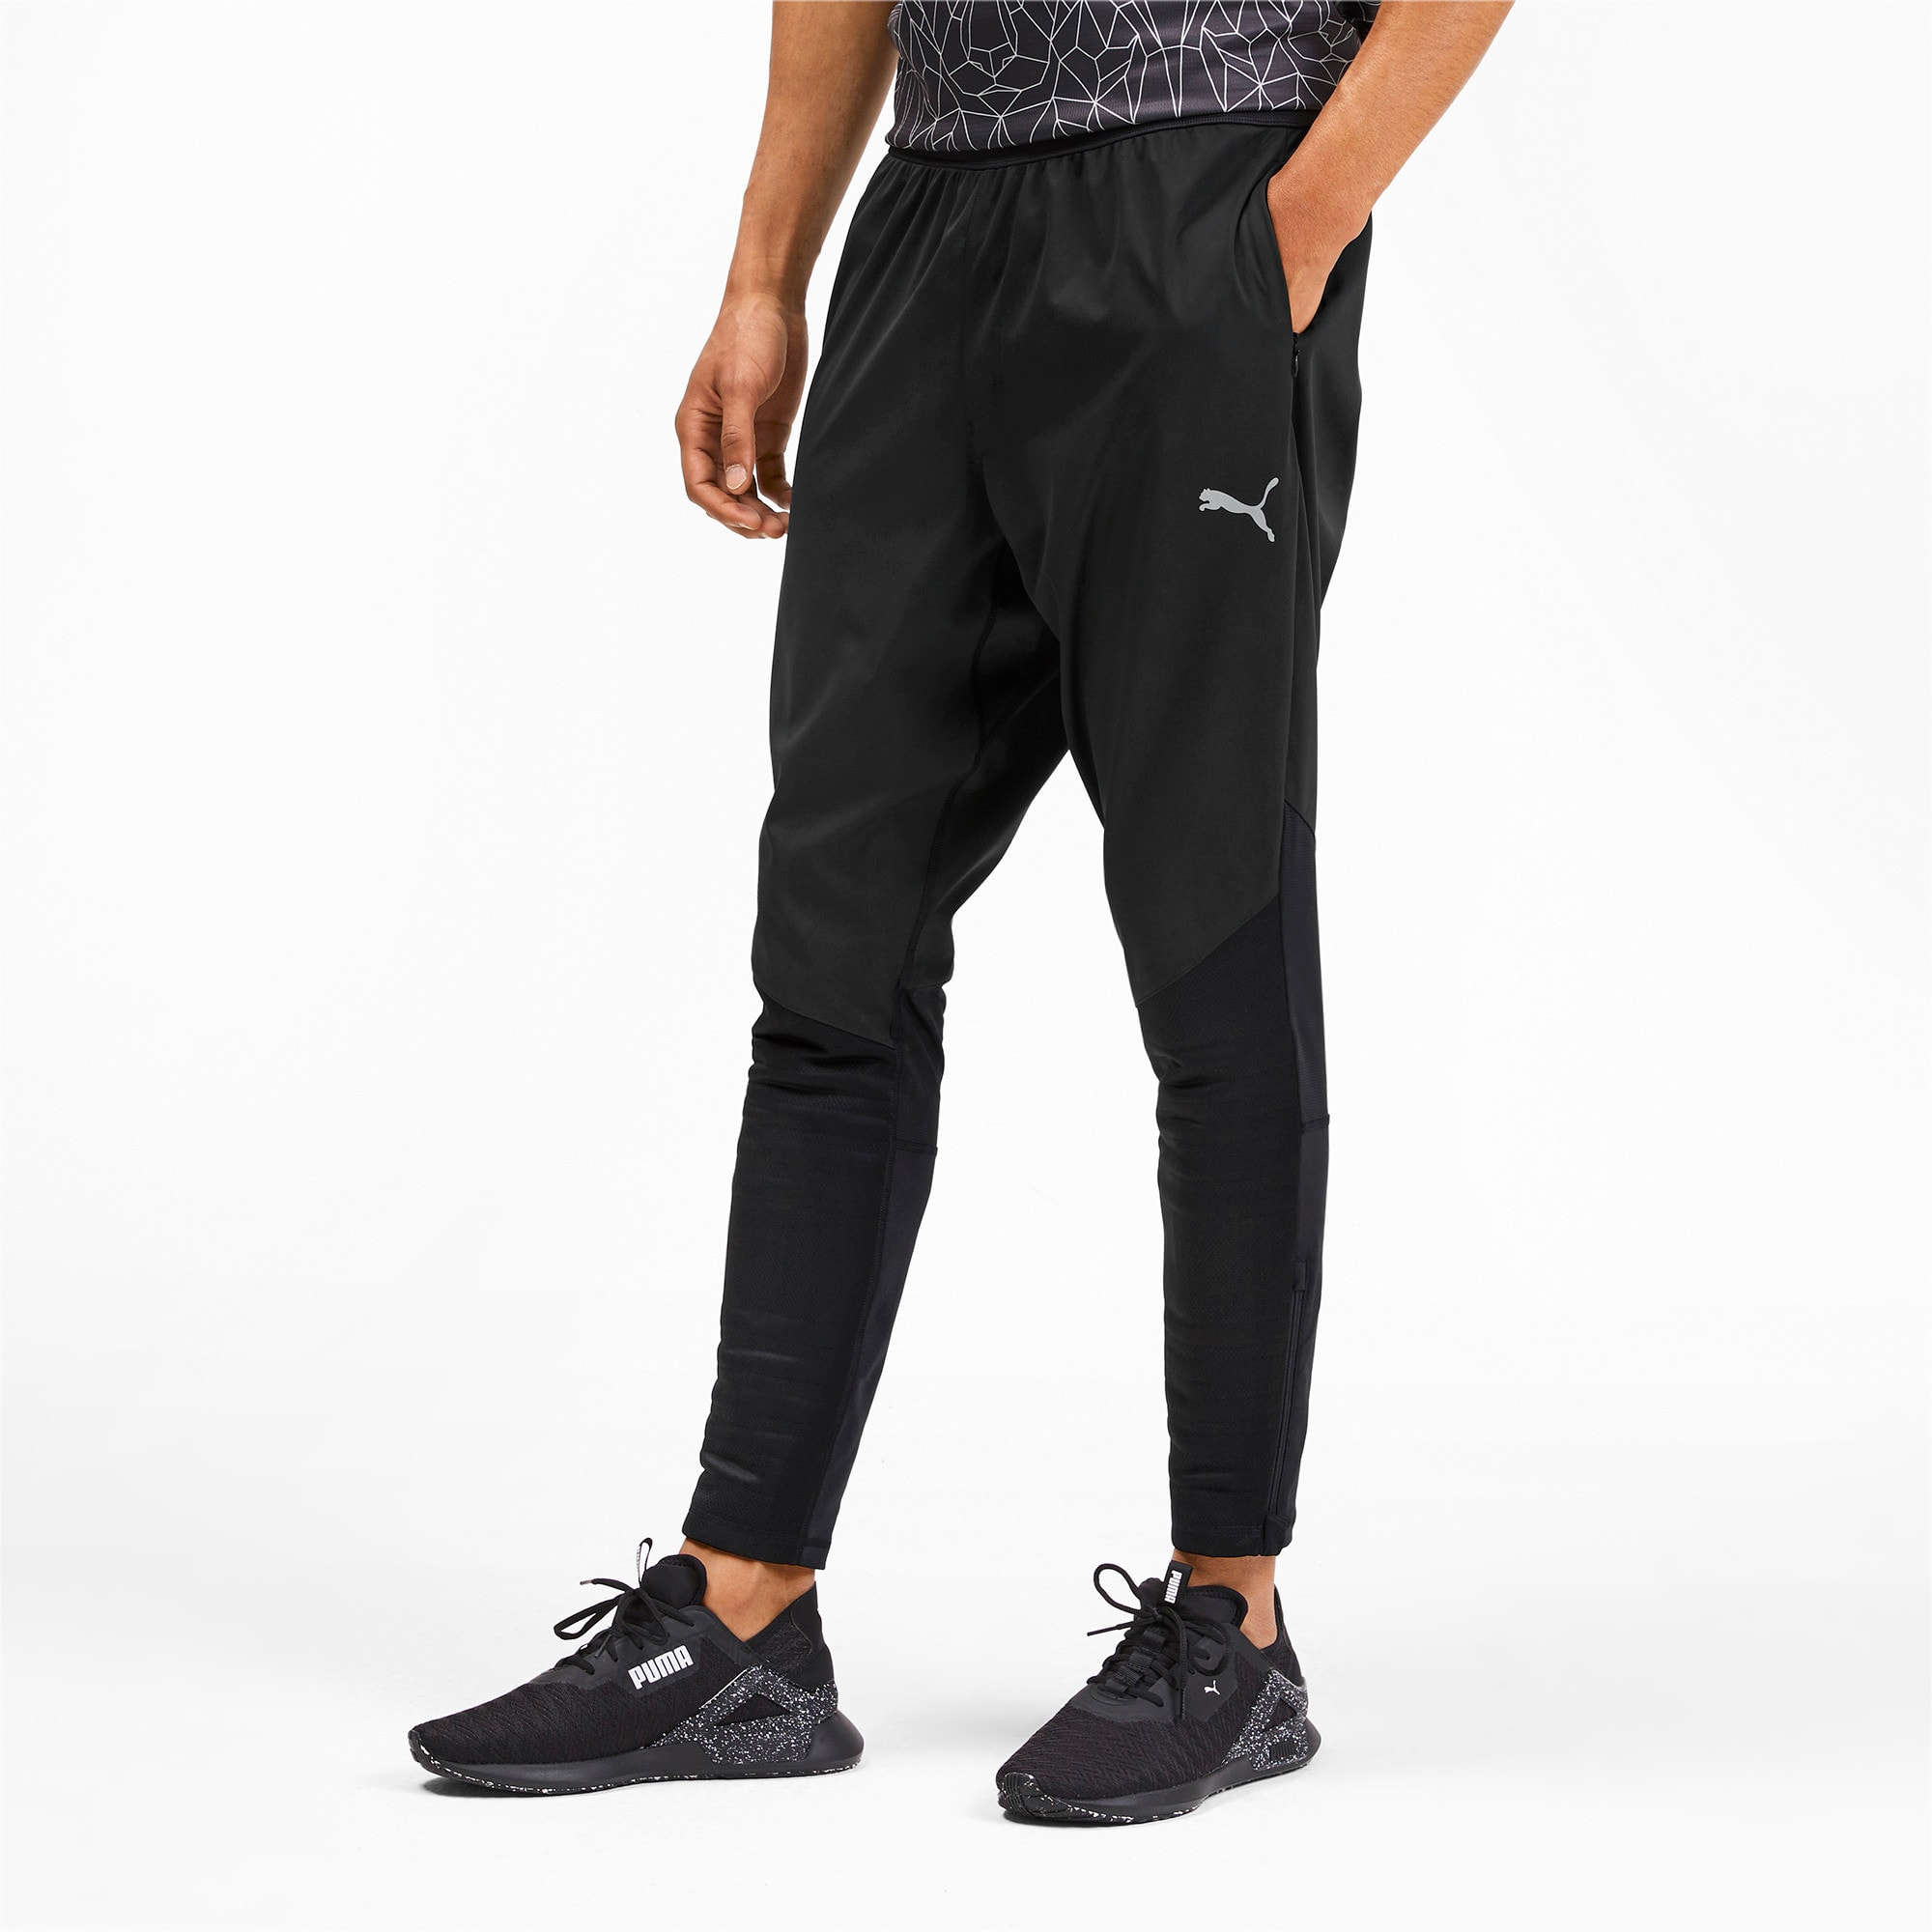 Thumbnail 1 of Get Fast Excite Herren Running Gewebte Hose, Puma Black, medium